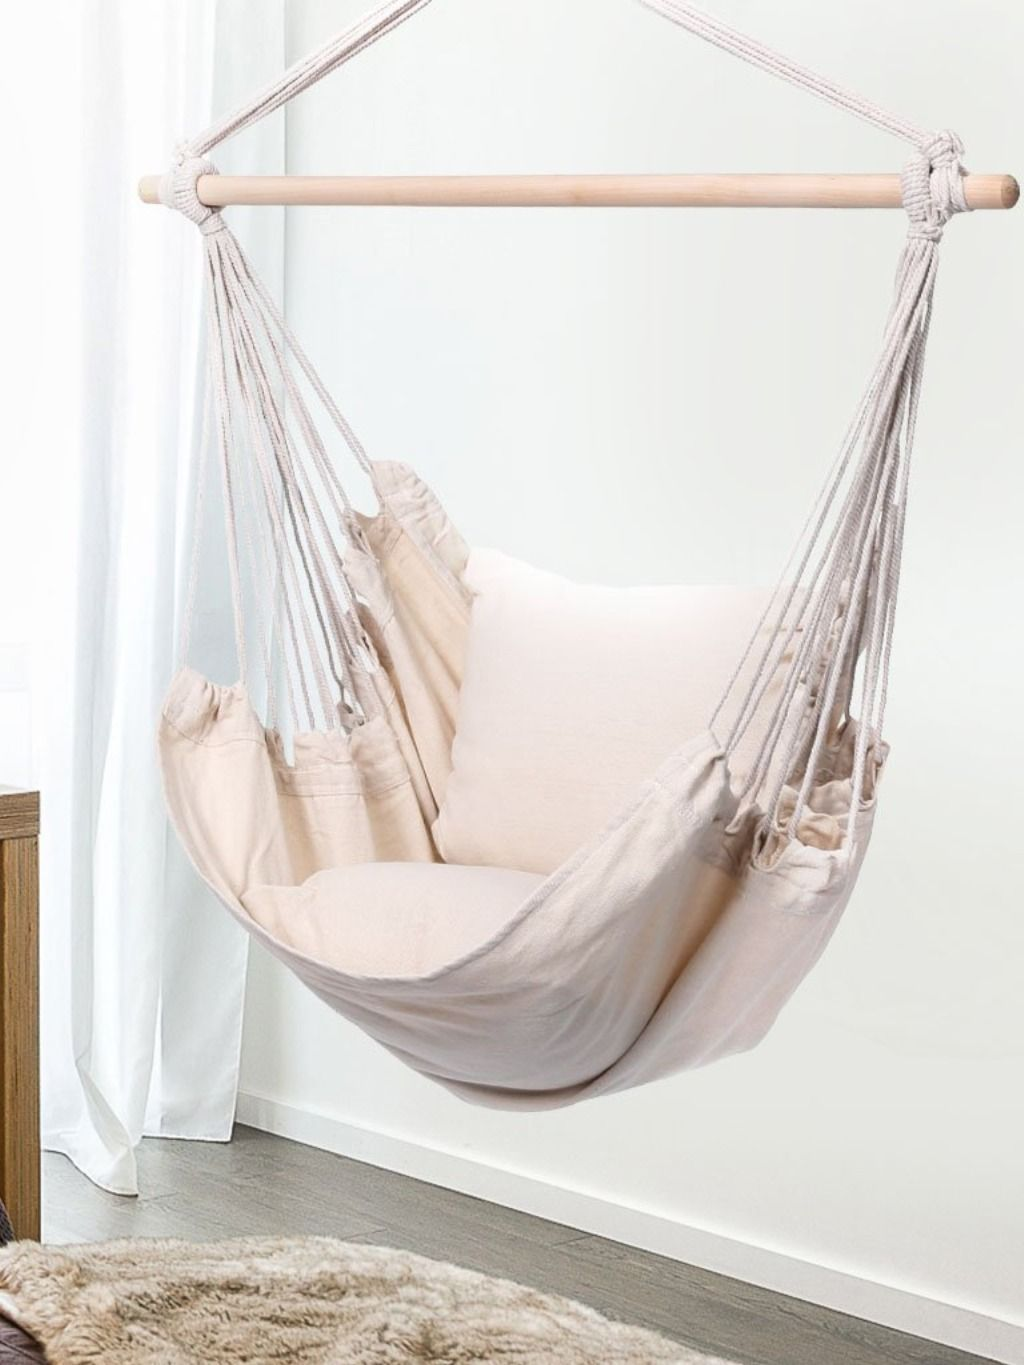 Inether Padded Hammock Hanging Chair Is A Comfortable Favorite For Grown Ups Or For Cuddling With Their Children Hanging Chair Hanging Swing Chair Hammock